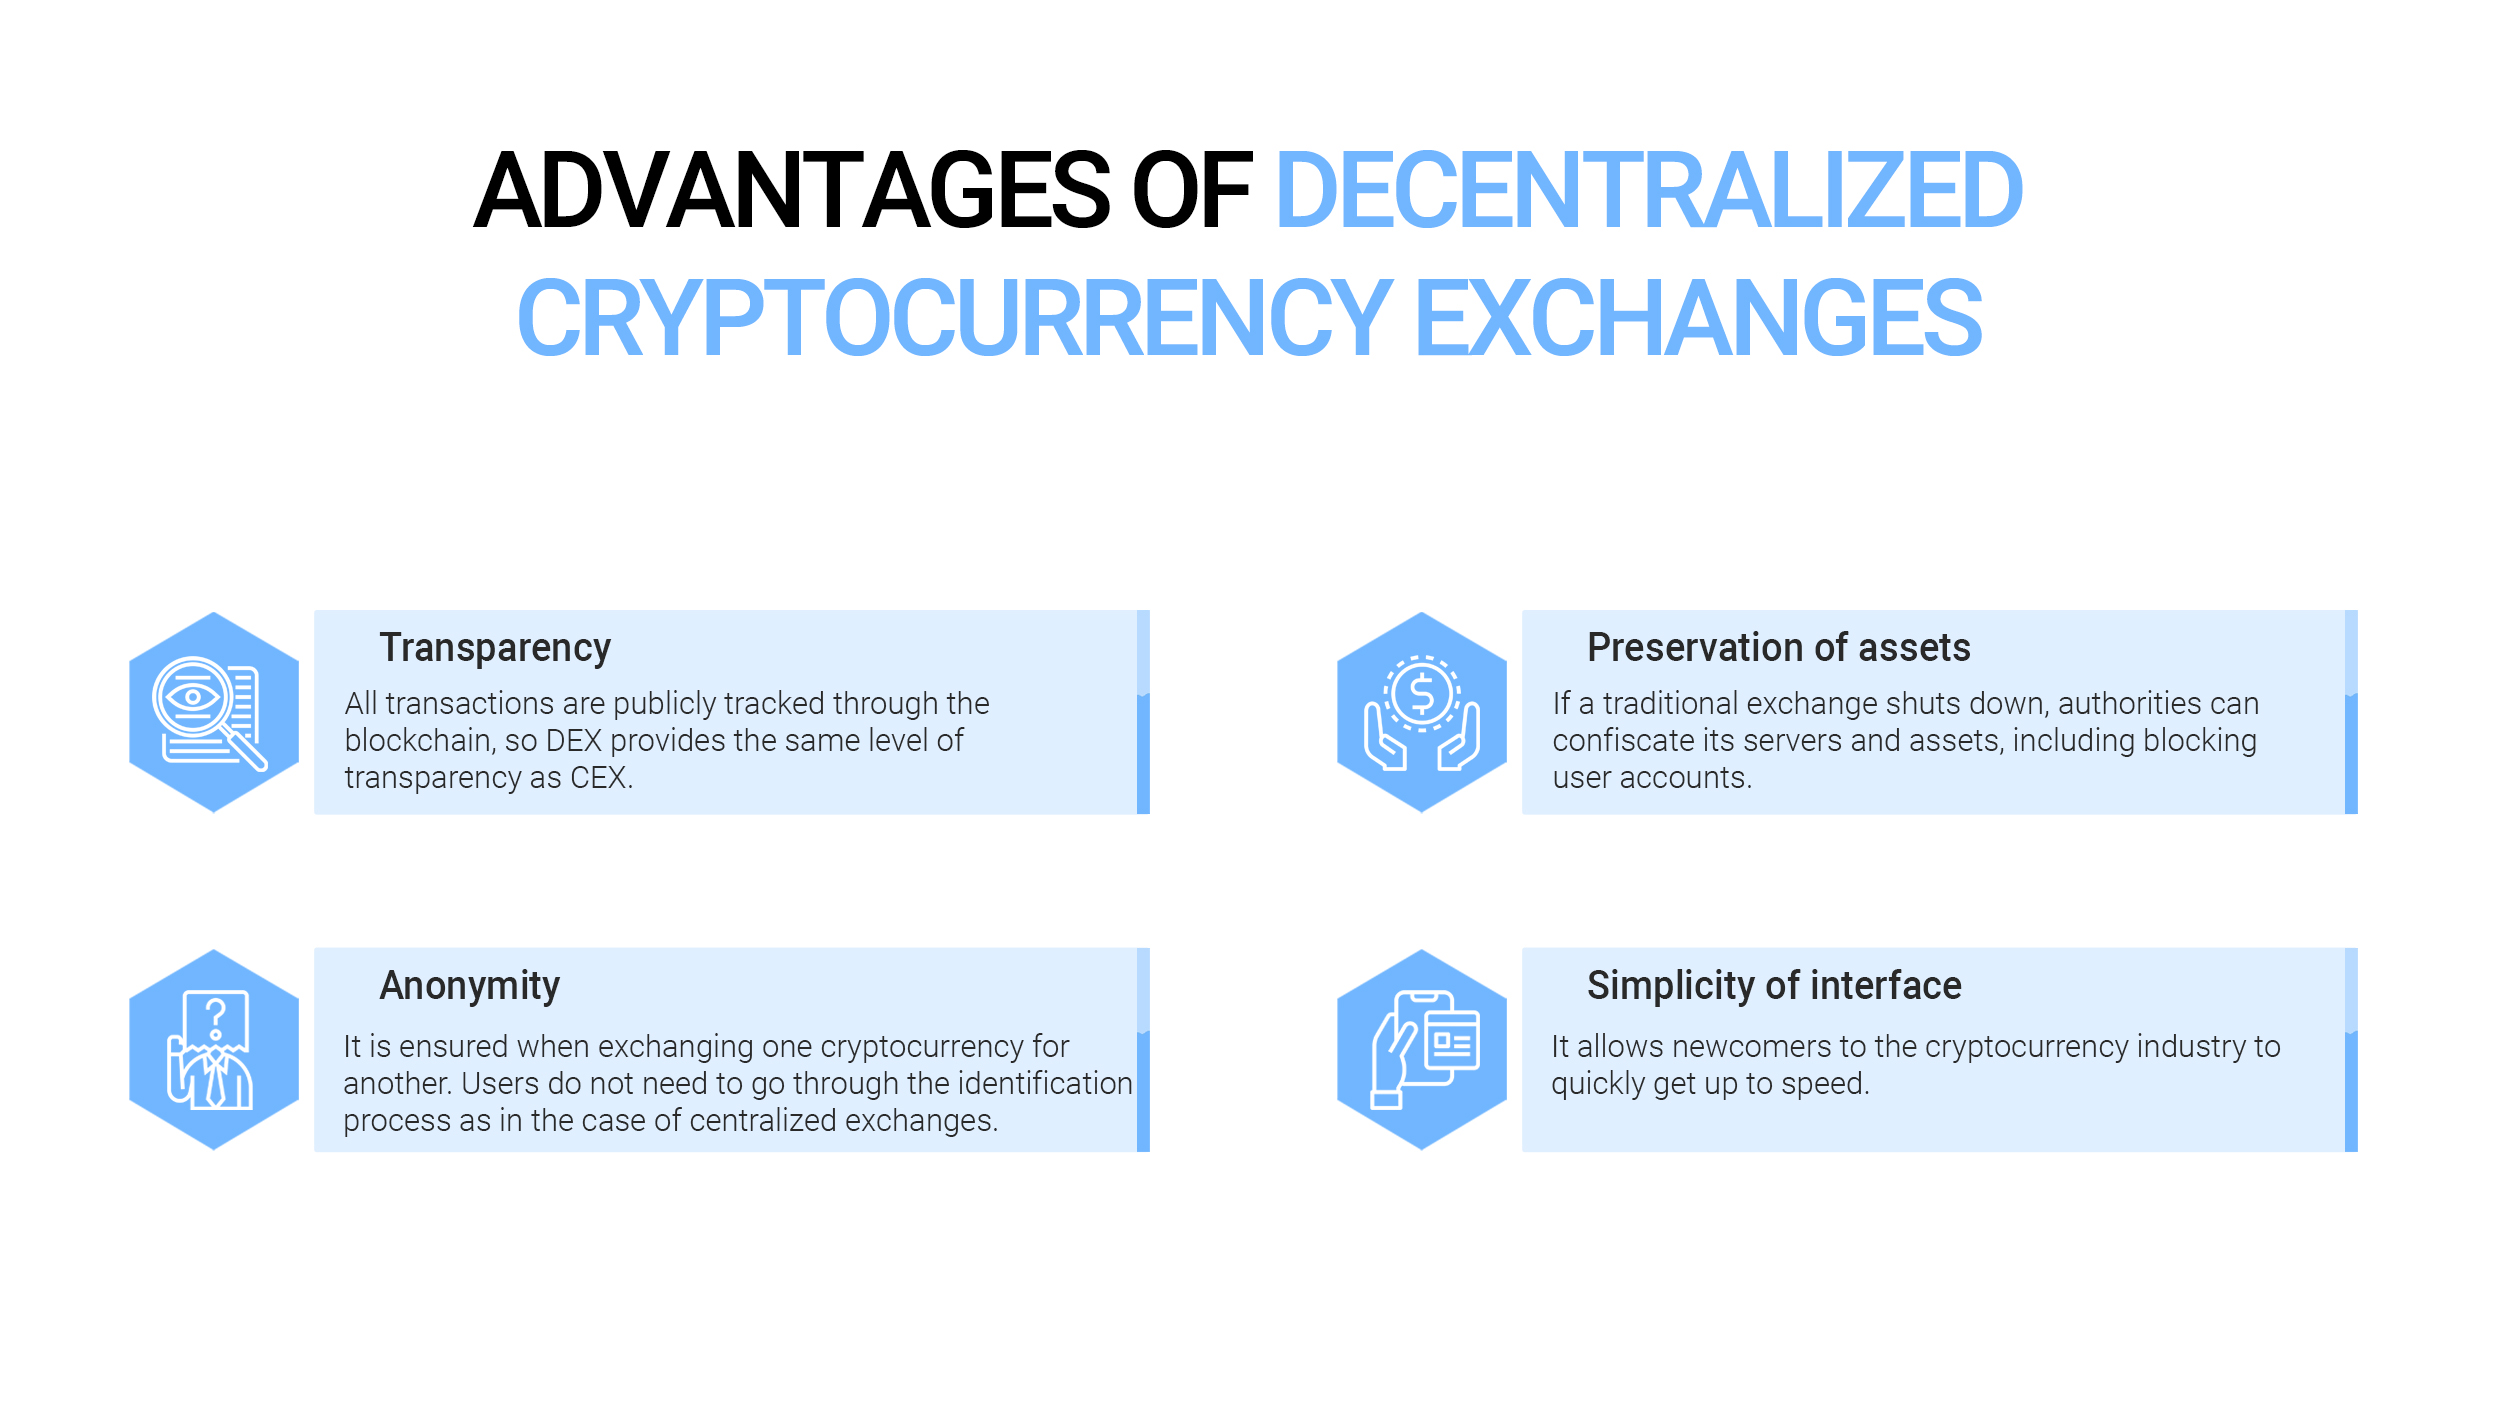 Advantages of Decentralized Cryptocurrency Exchanges